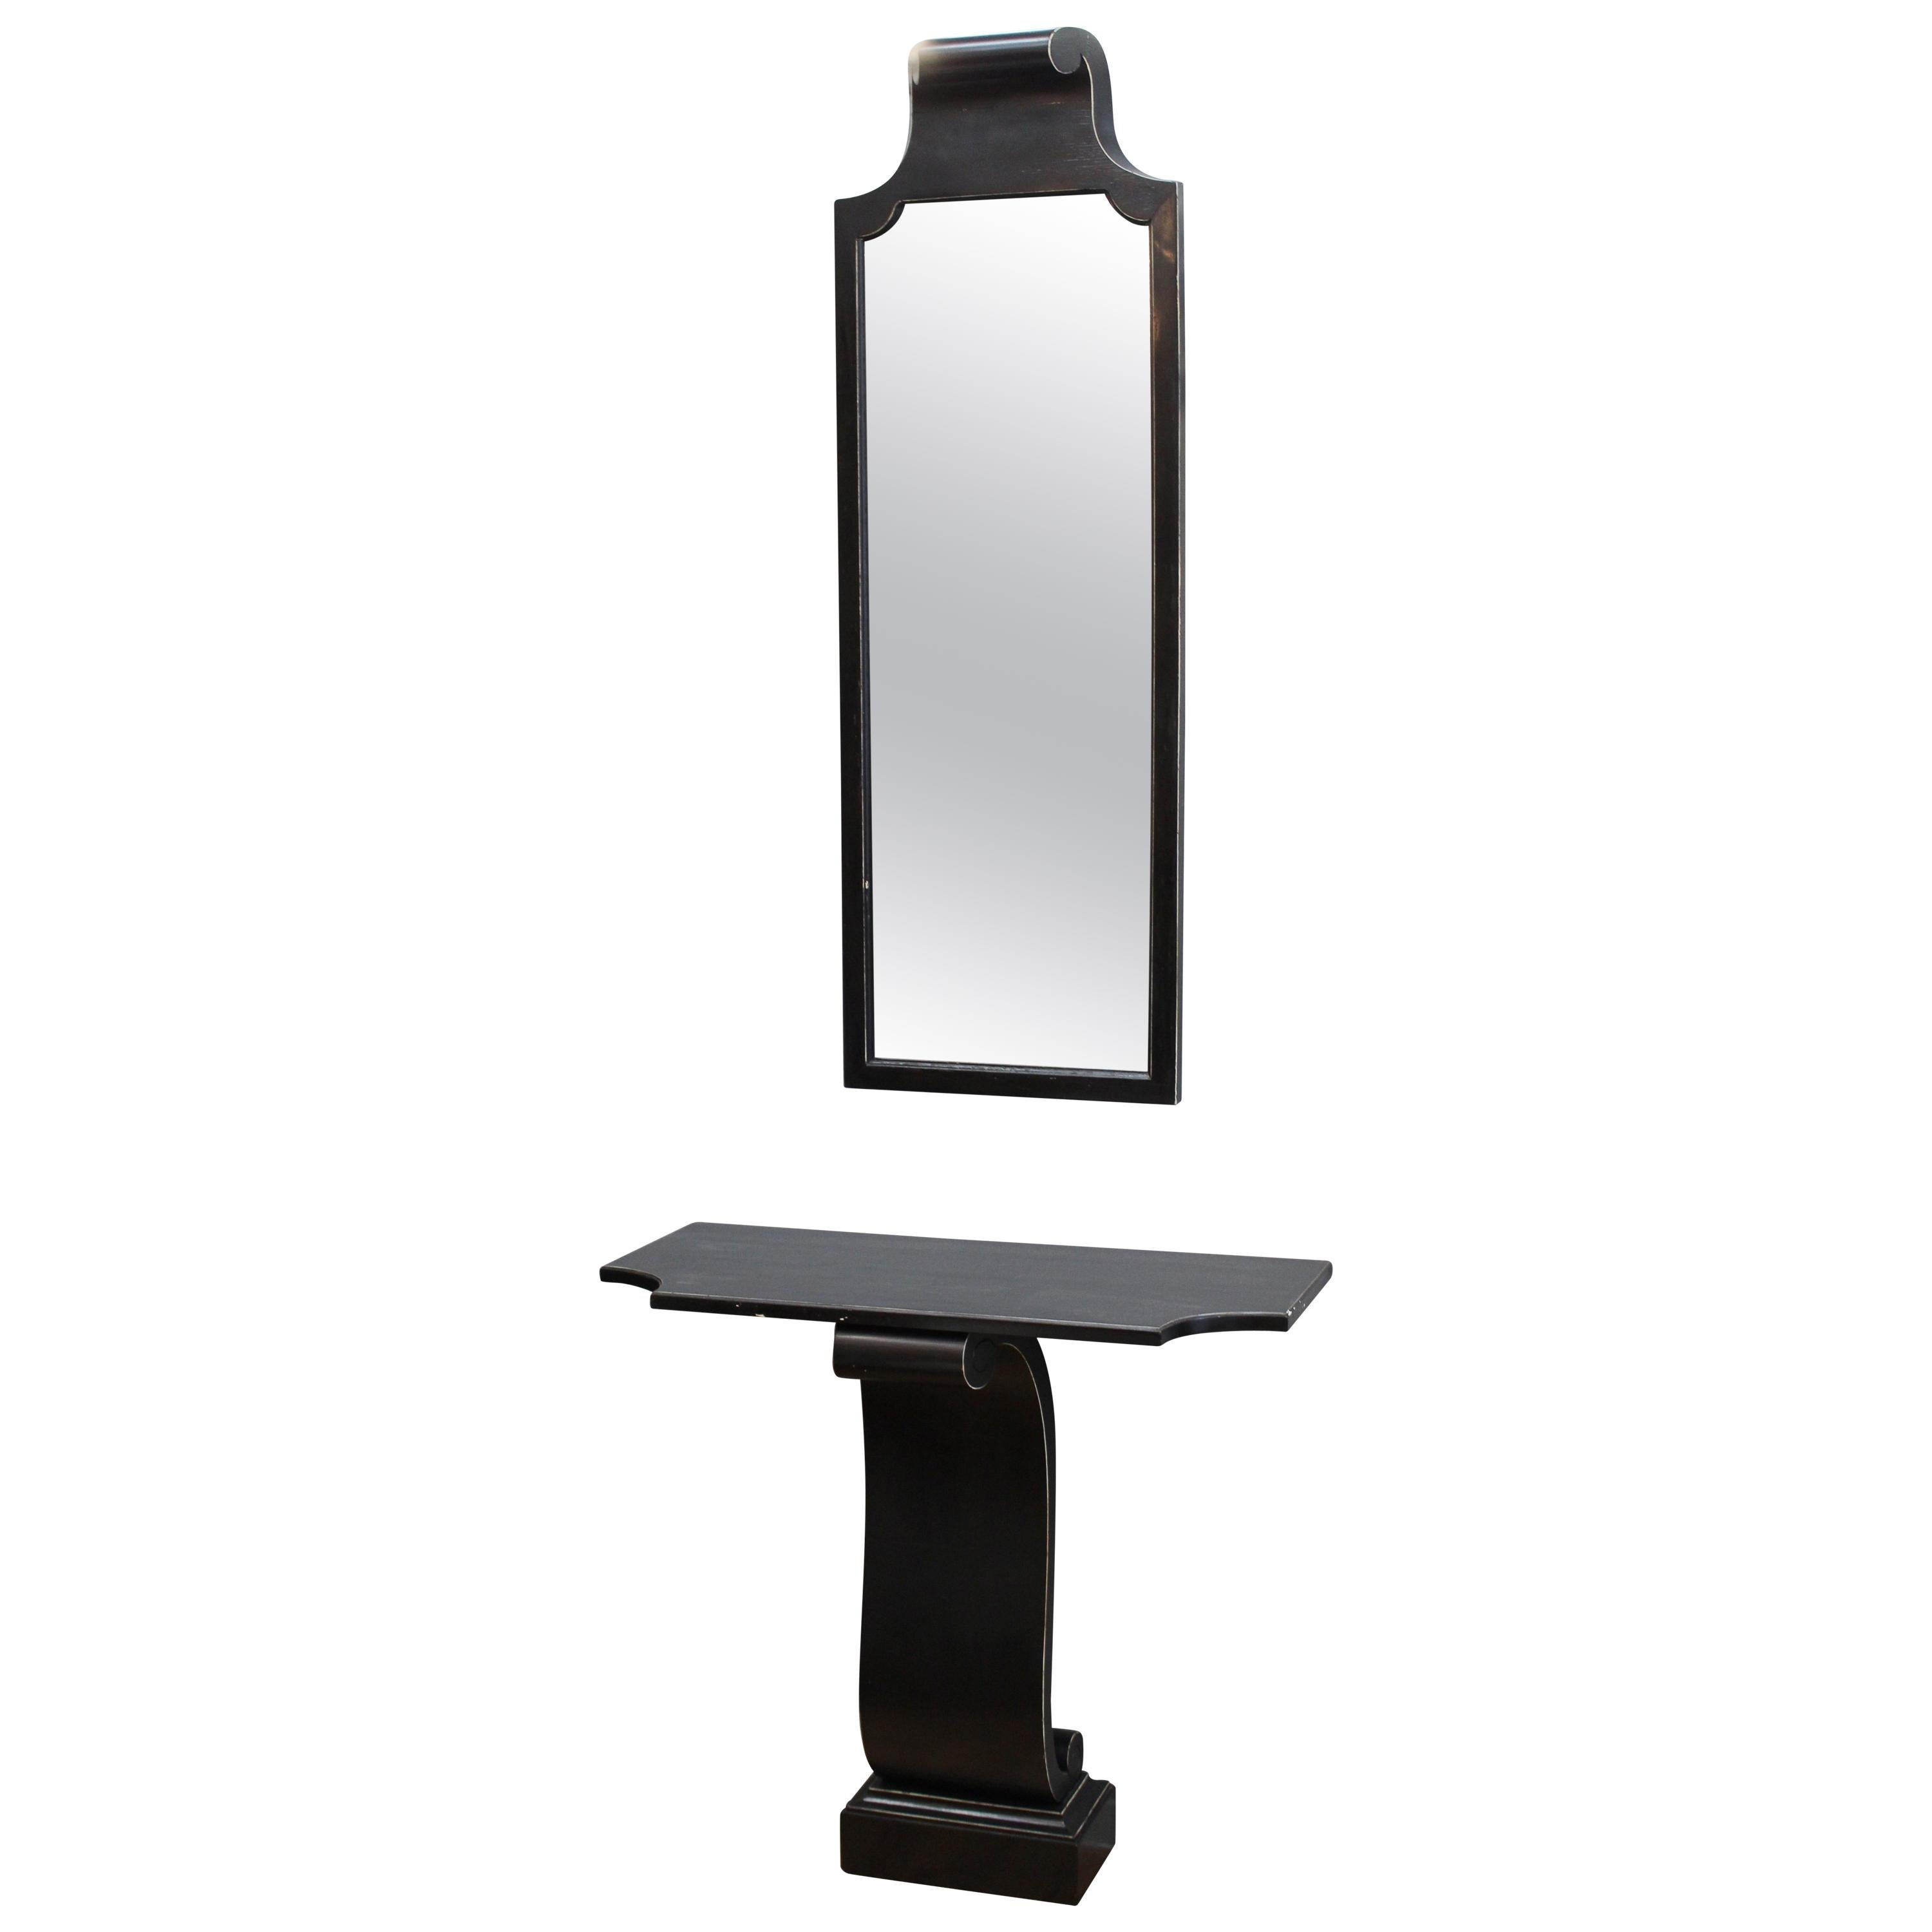 Grosfeld House Wall Console and Mirror in Ebonized Wood